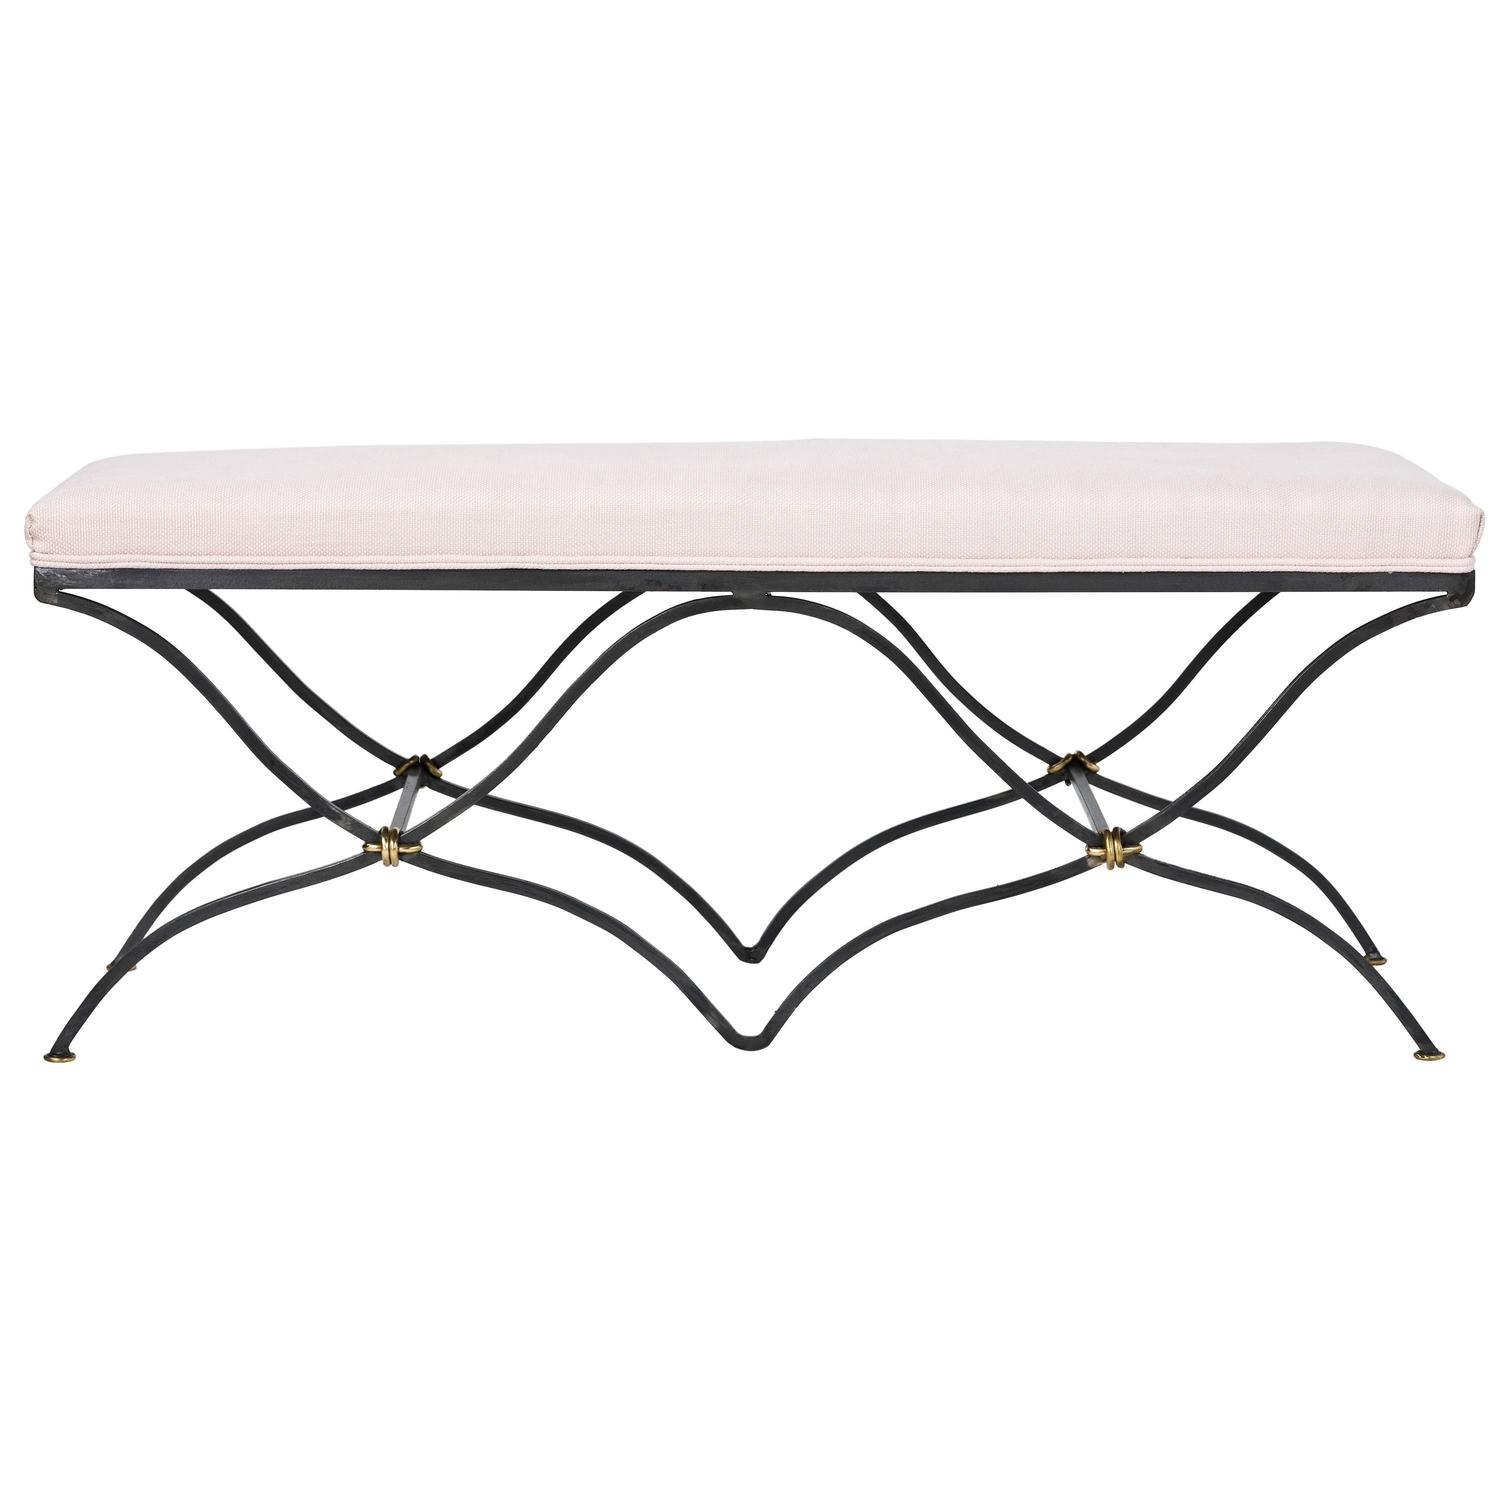 Hand forged Iron Two Seat Belgian Linen Bench For Sale at